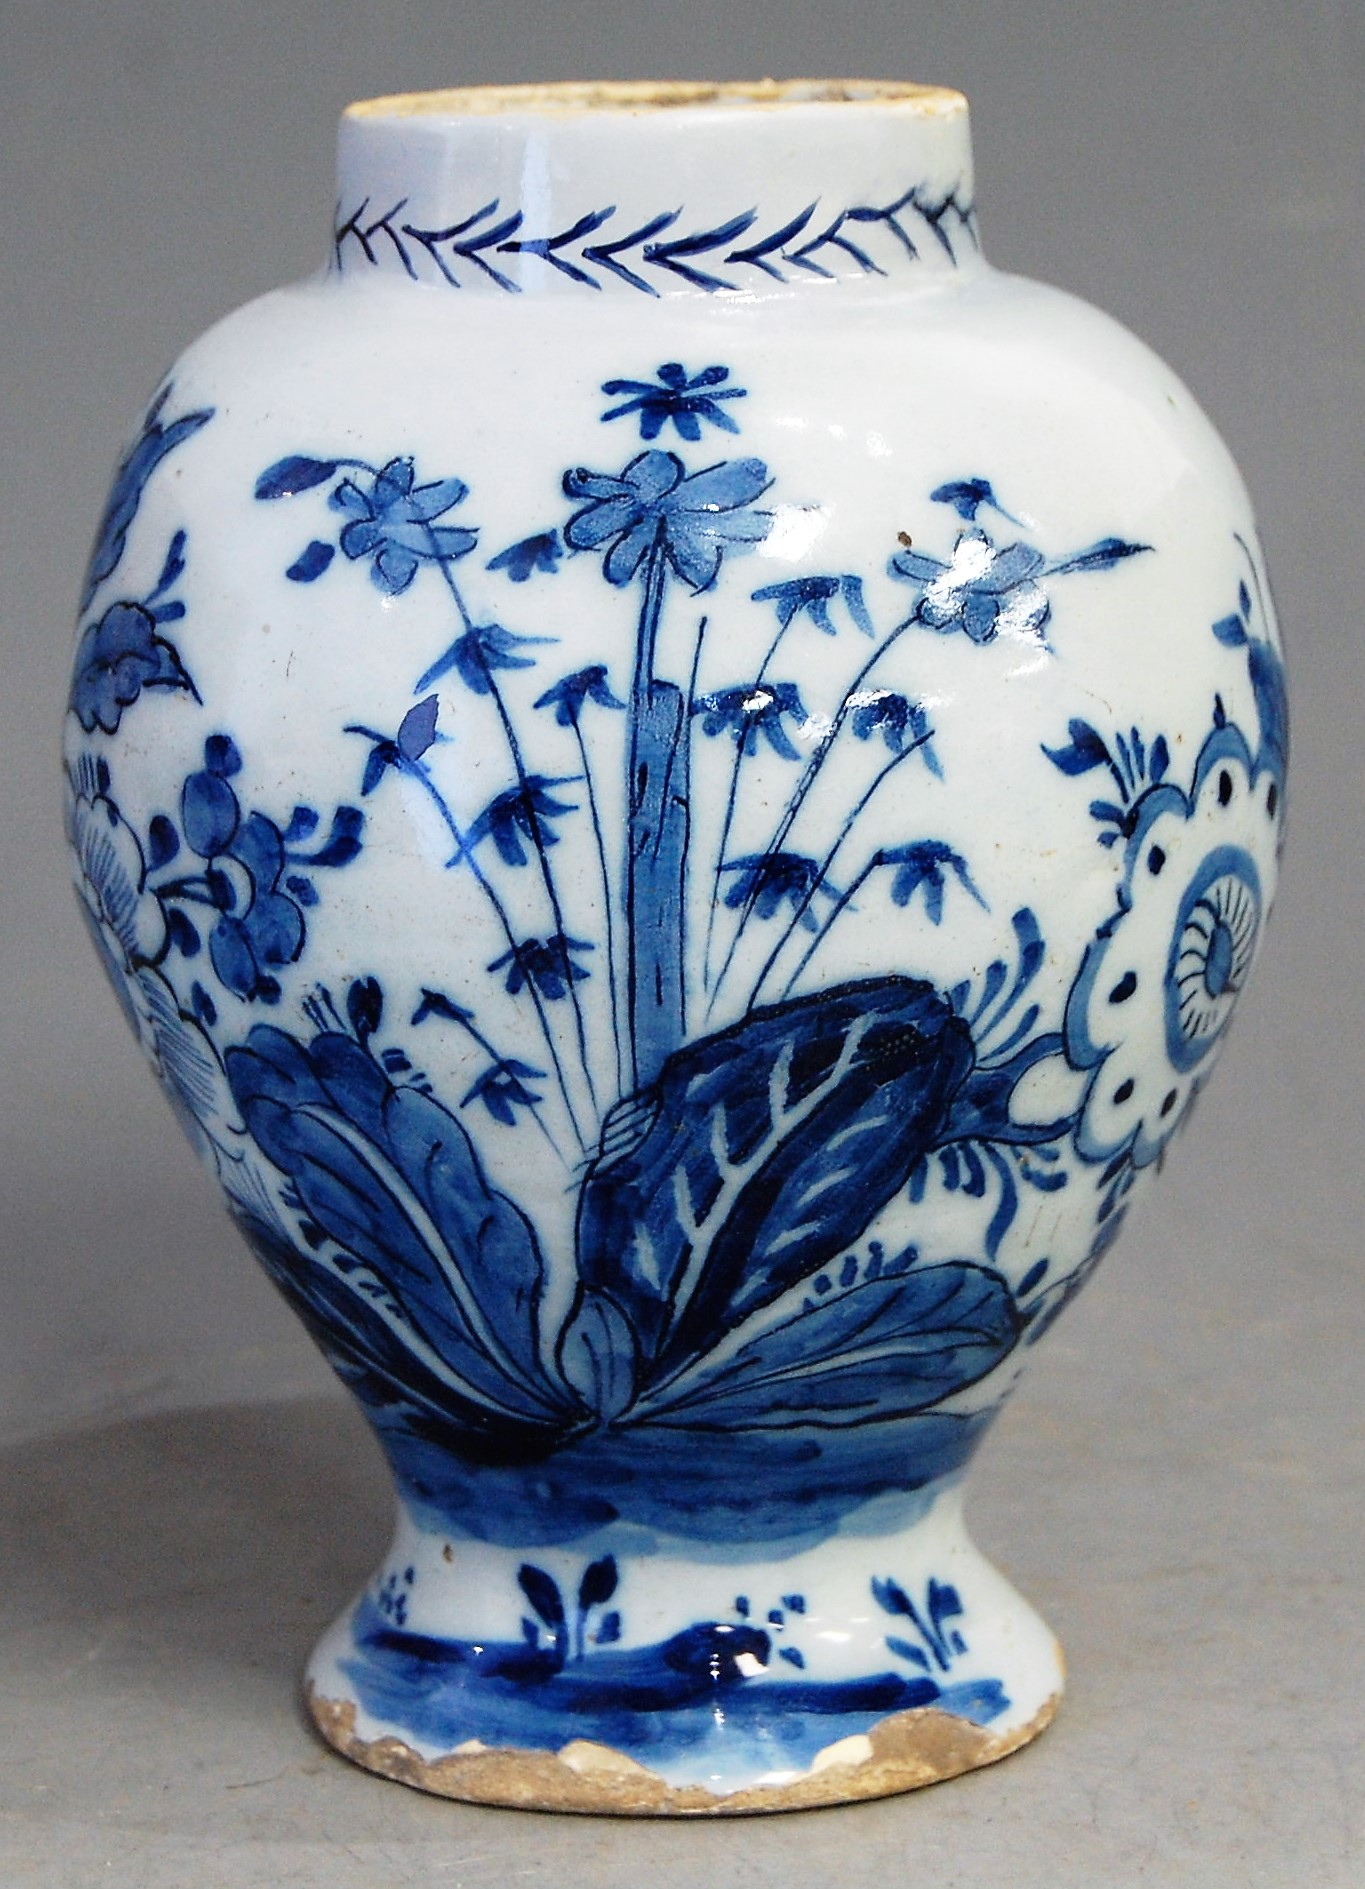 Lot 19 - An 18th century delft blue and white vase, of baluster form, h.18cm